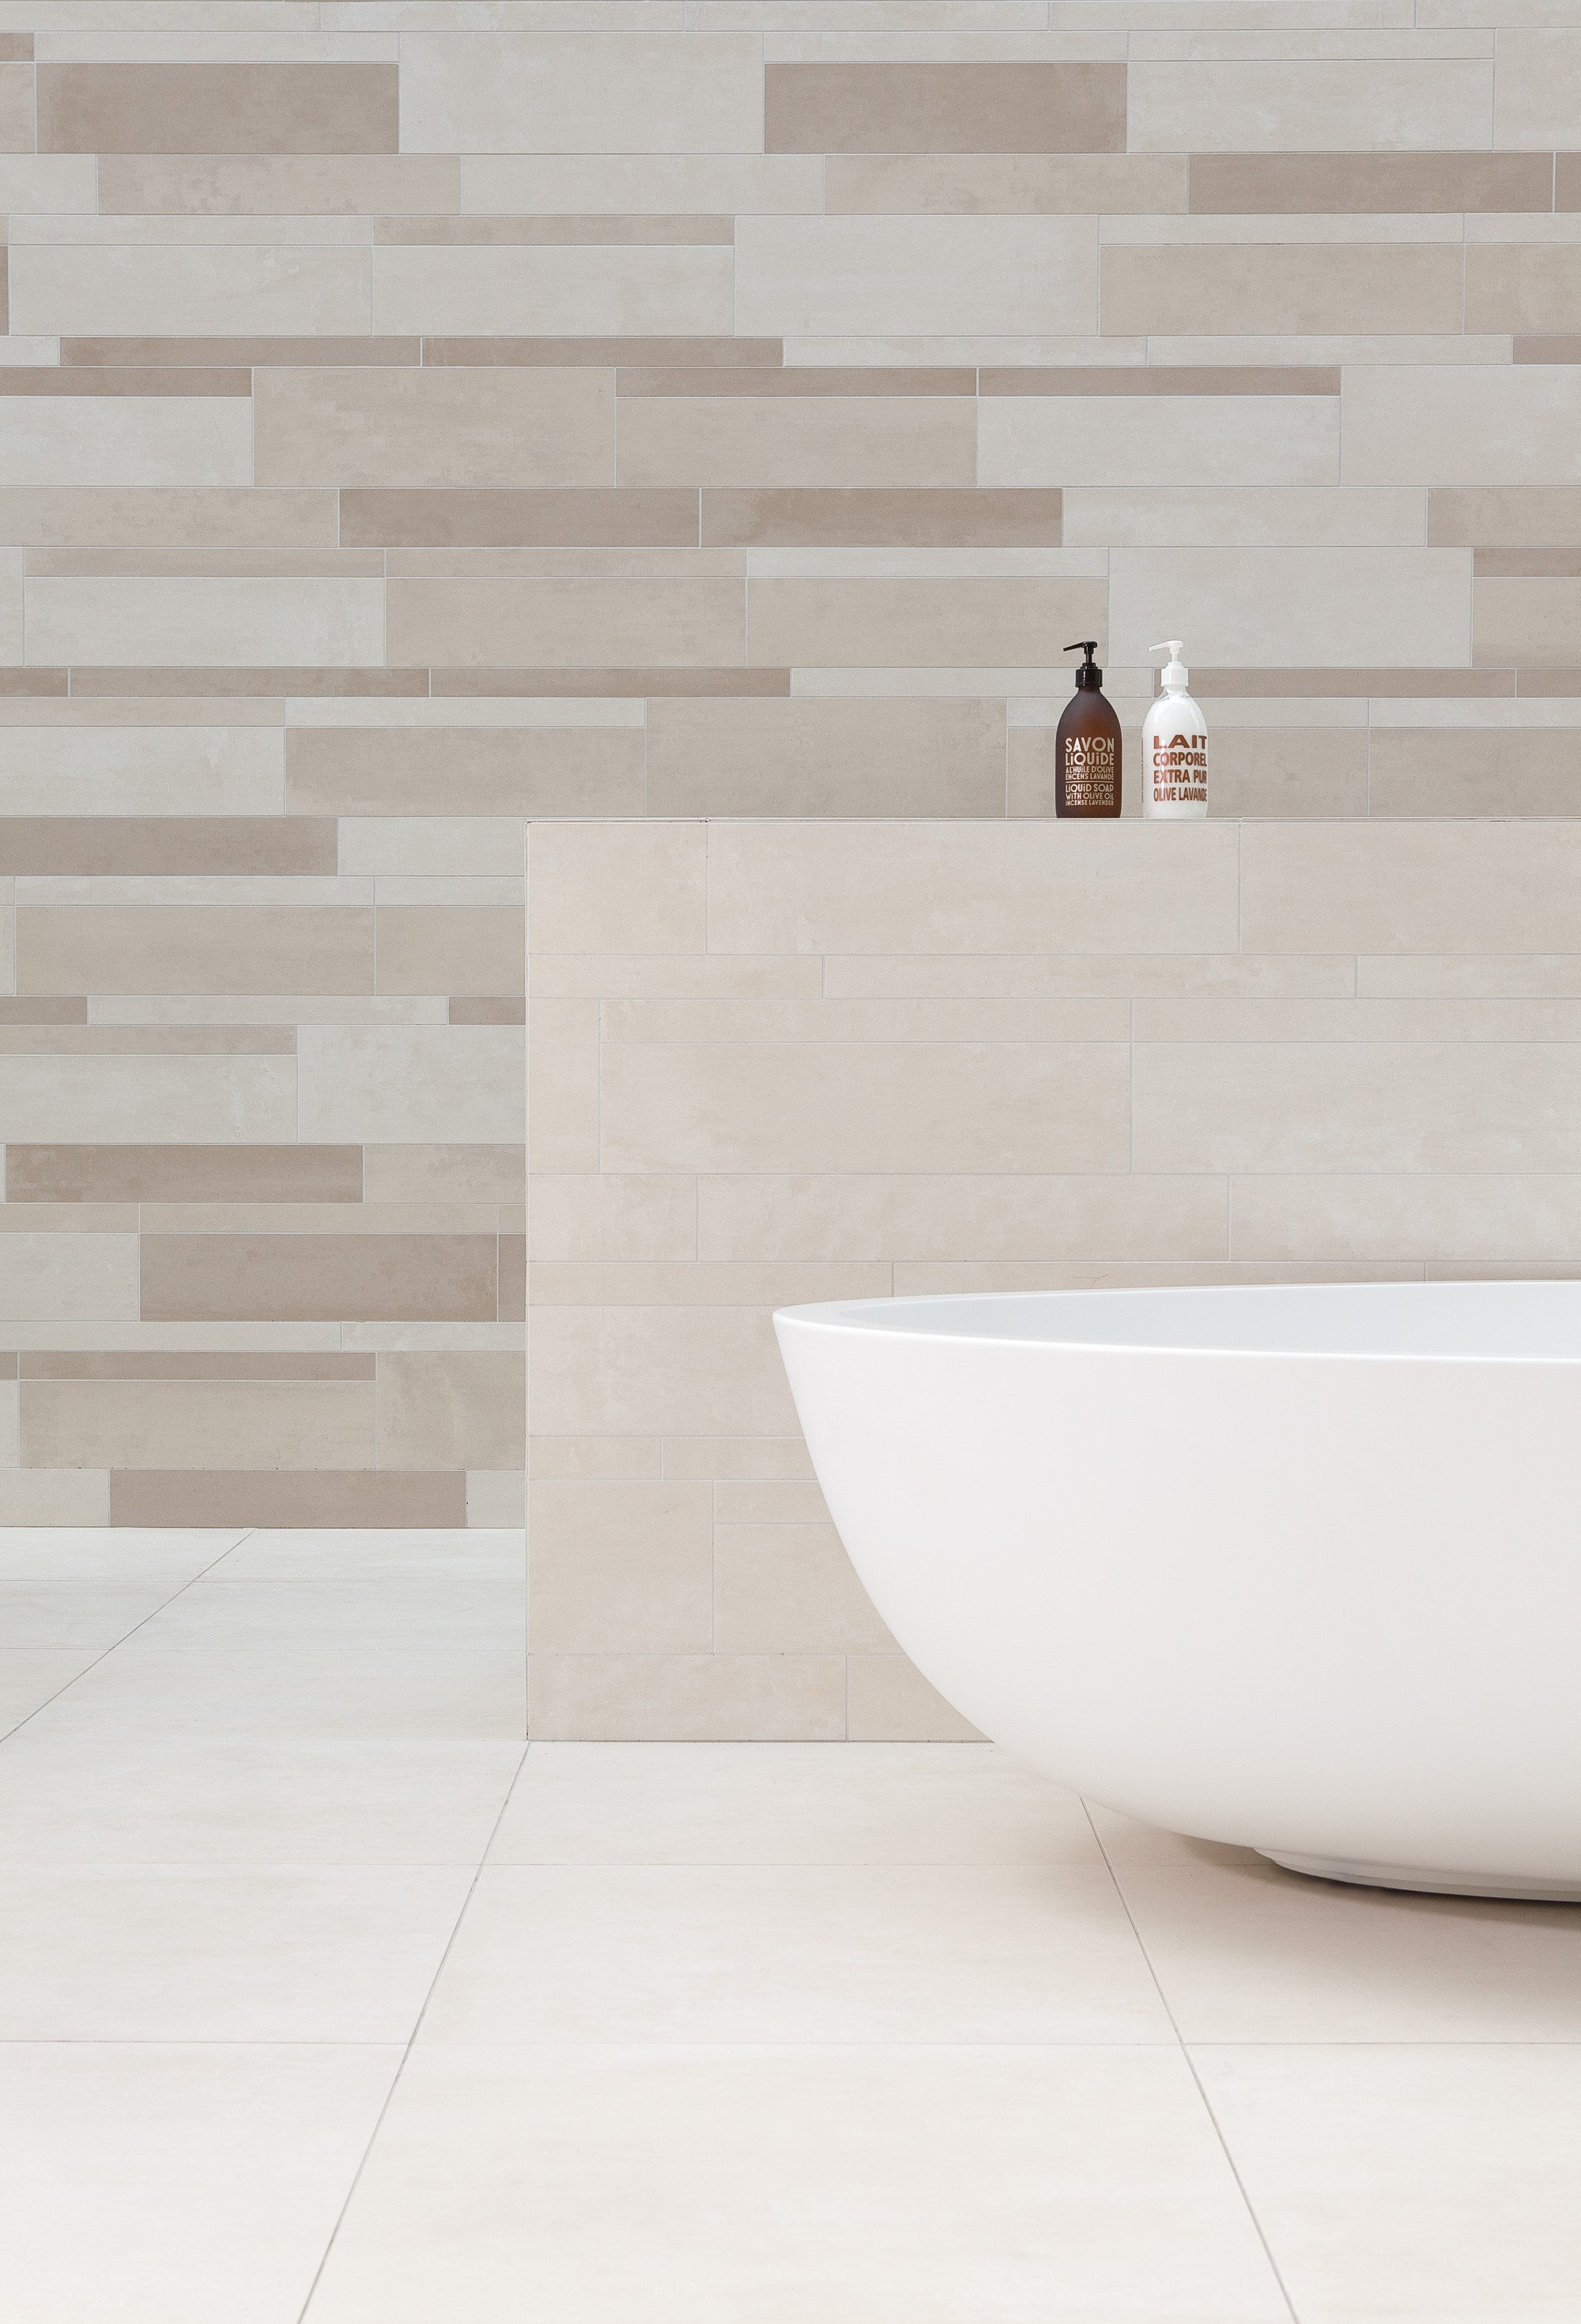 Ceramic wall floor tiles beige brown by mosa design mosa - Faience salle de bain beige ...